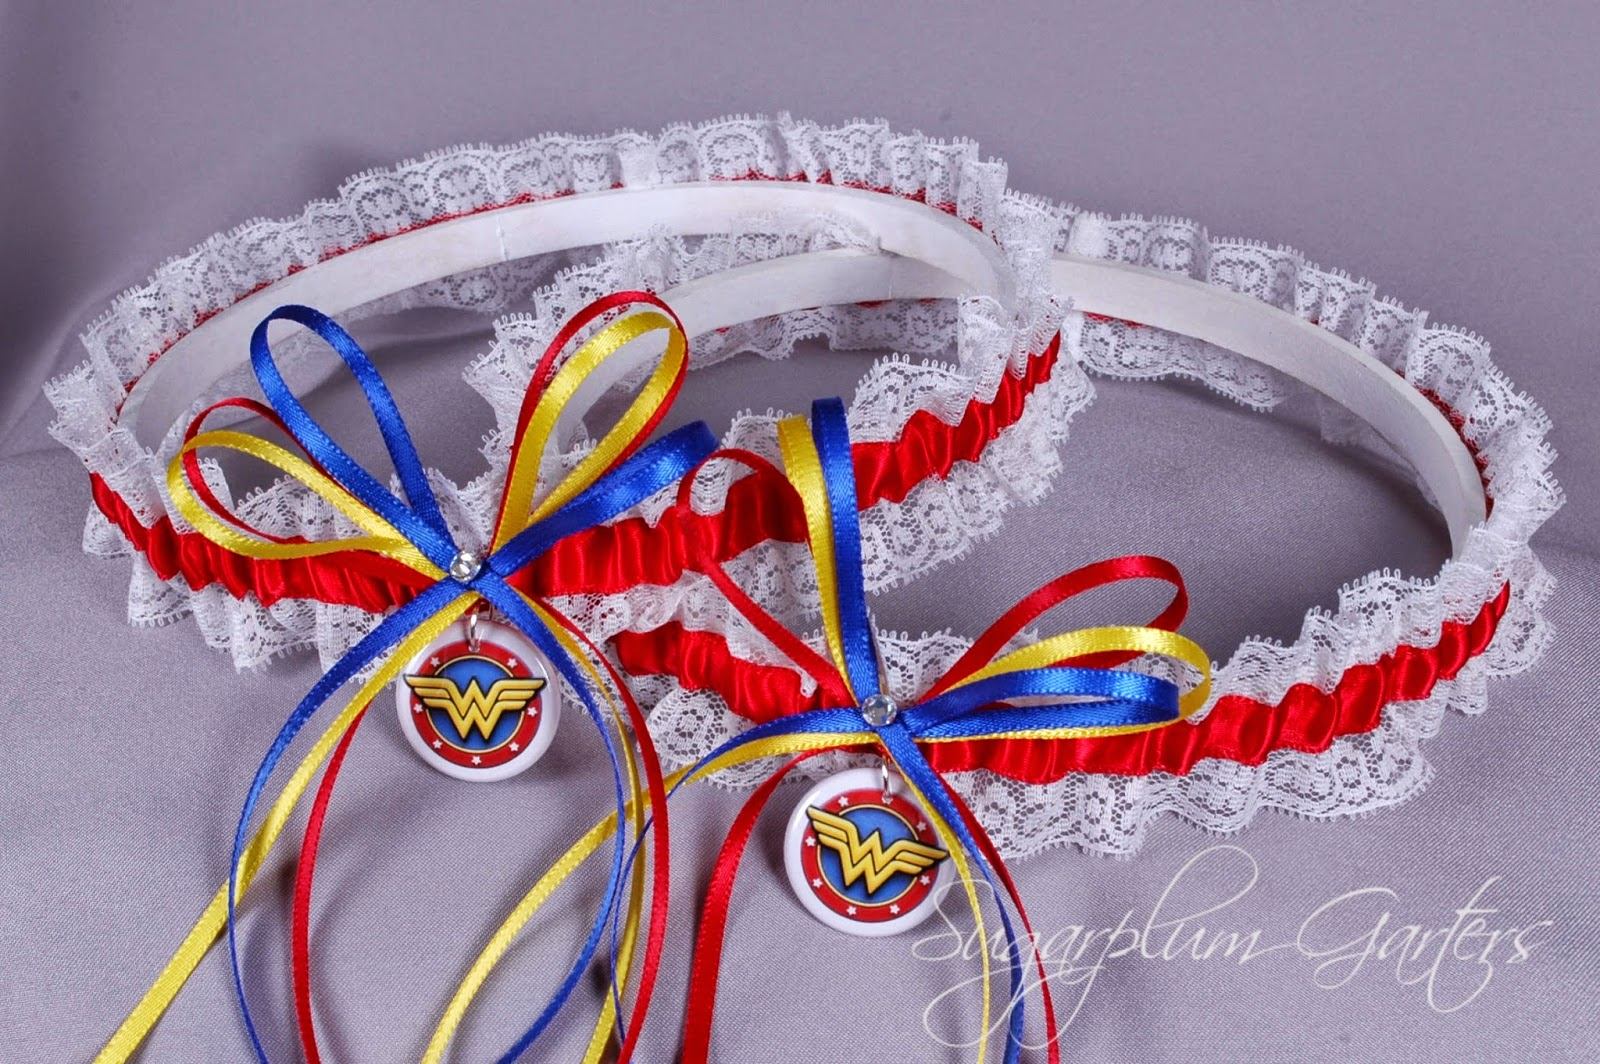 Wonder Woman Lace Wedding Garter Set by Sugarplum Garters